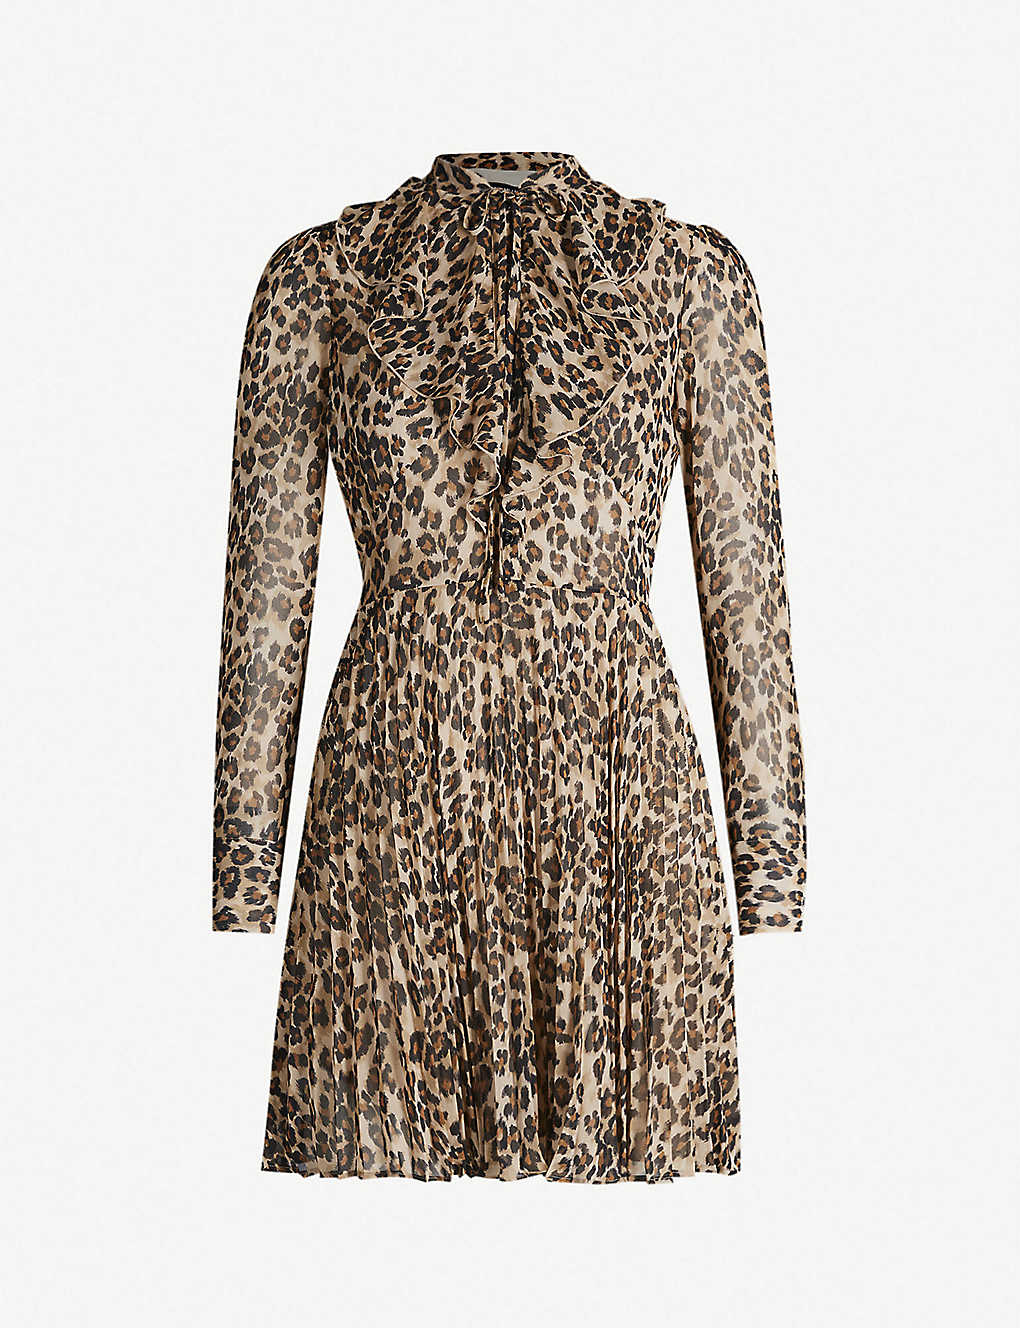 78c57df9a9 KAREN MILLEN - Leopard-print ruffled-panel chiffon dress ...